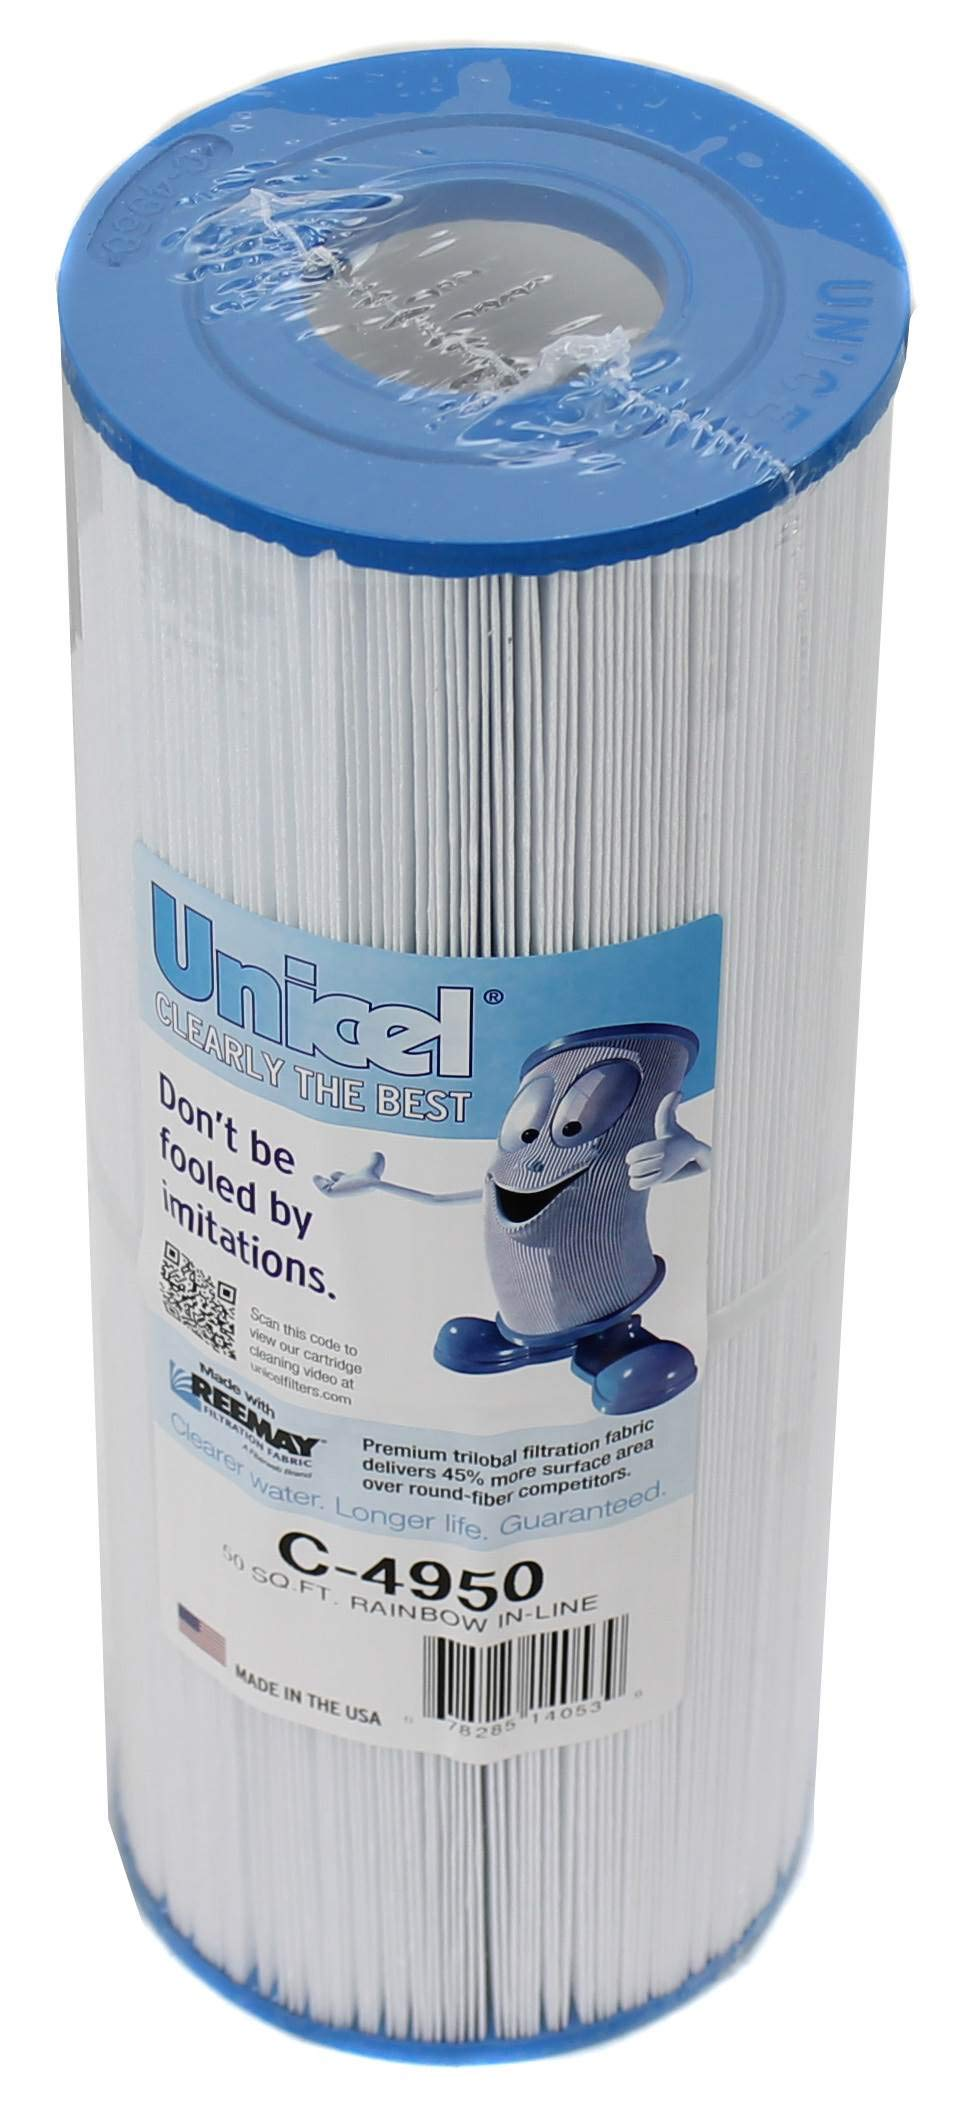 2 Unicel C4950 Filter Cartridges by Unicel